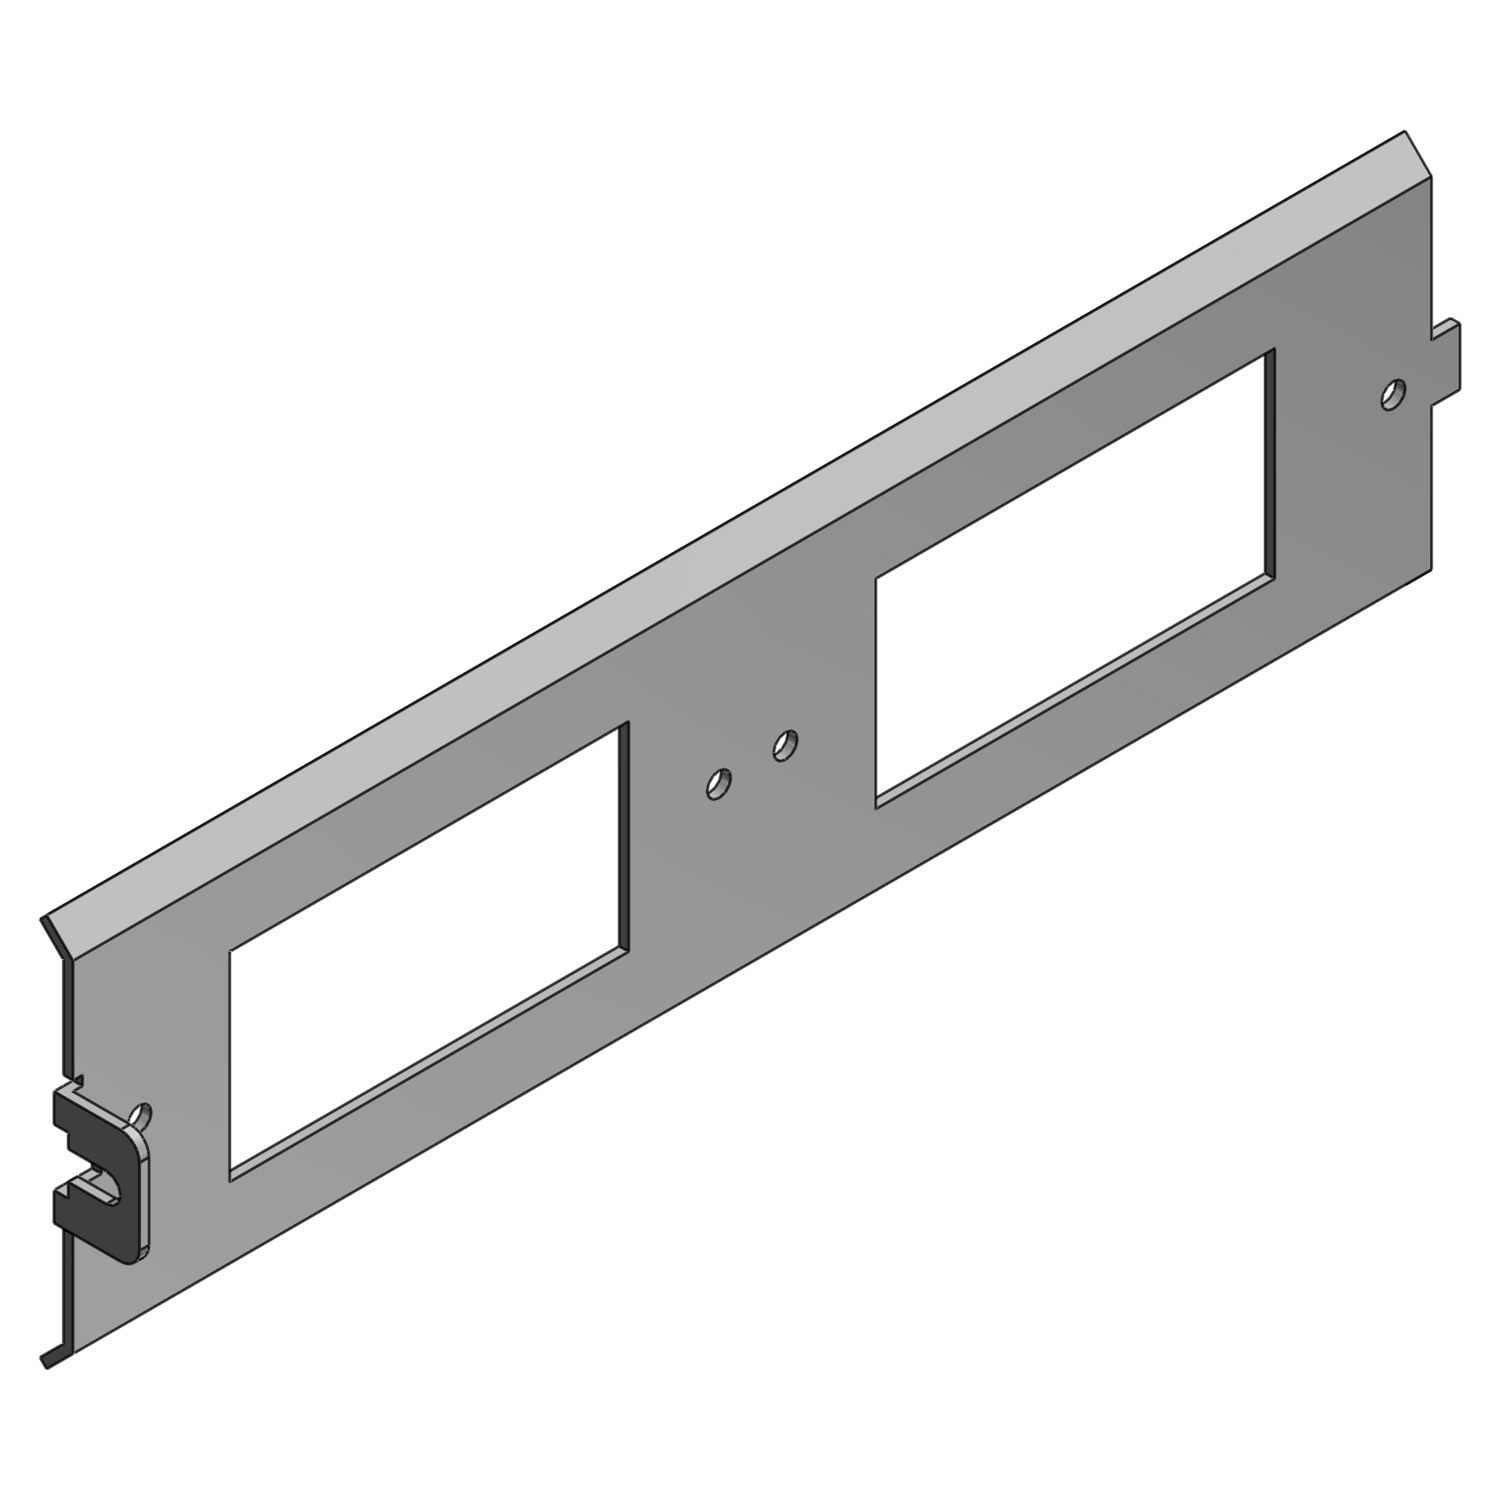 Steel City® AFP-6-GFCI-45 45 deg Sloped Power Panel With 2-GFCI, Steel